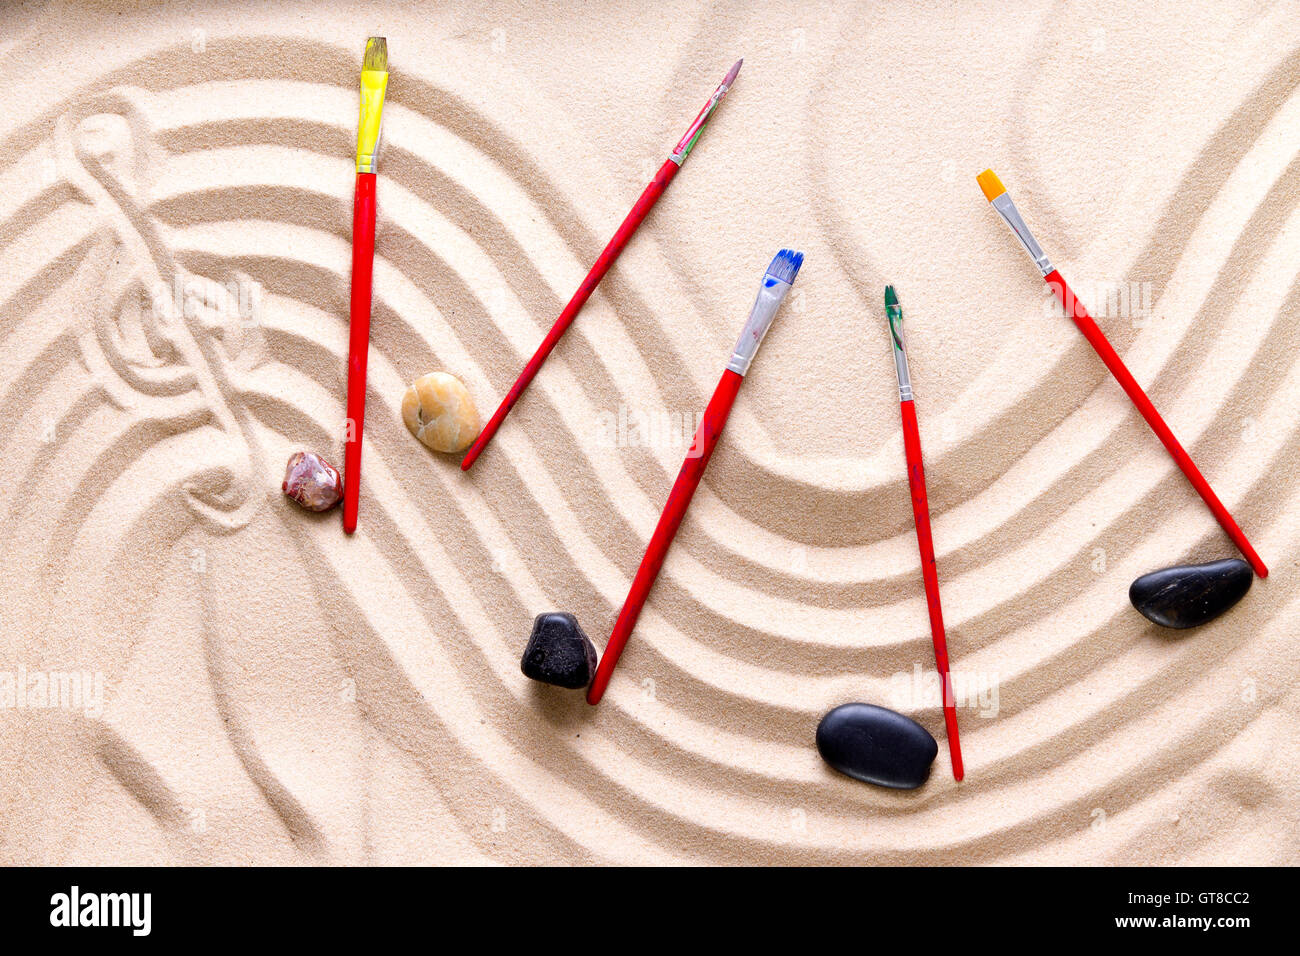 Harmony and music at the beach with an artistic conceptual image of a wavy score drawn in golden sand with a treble - Stock Image